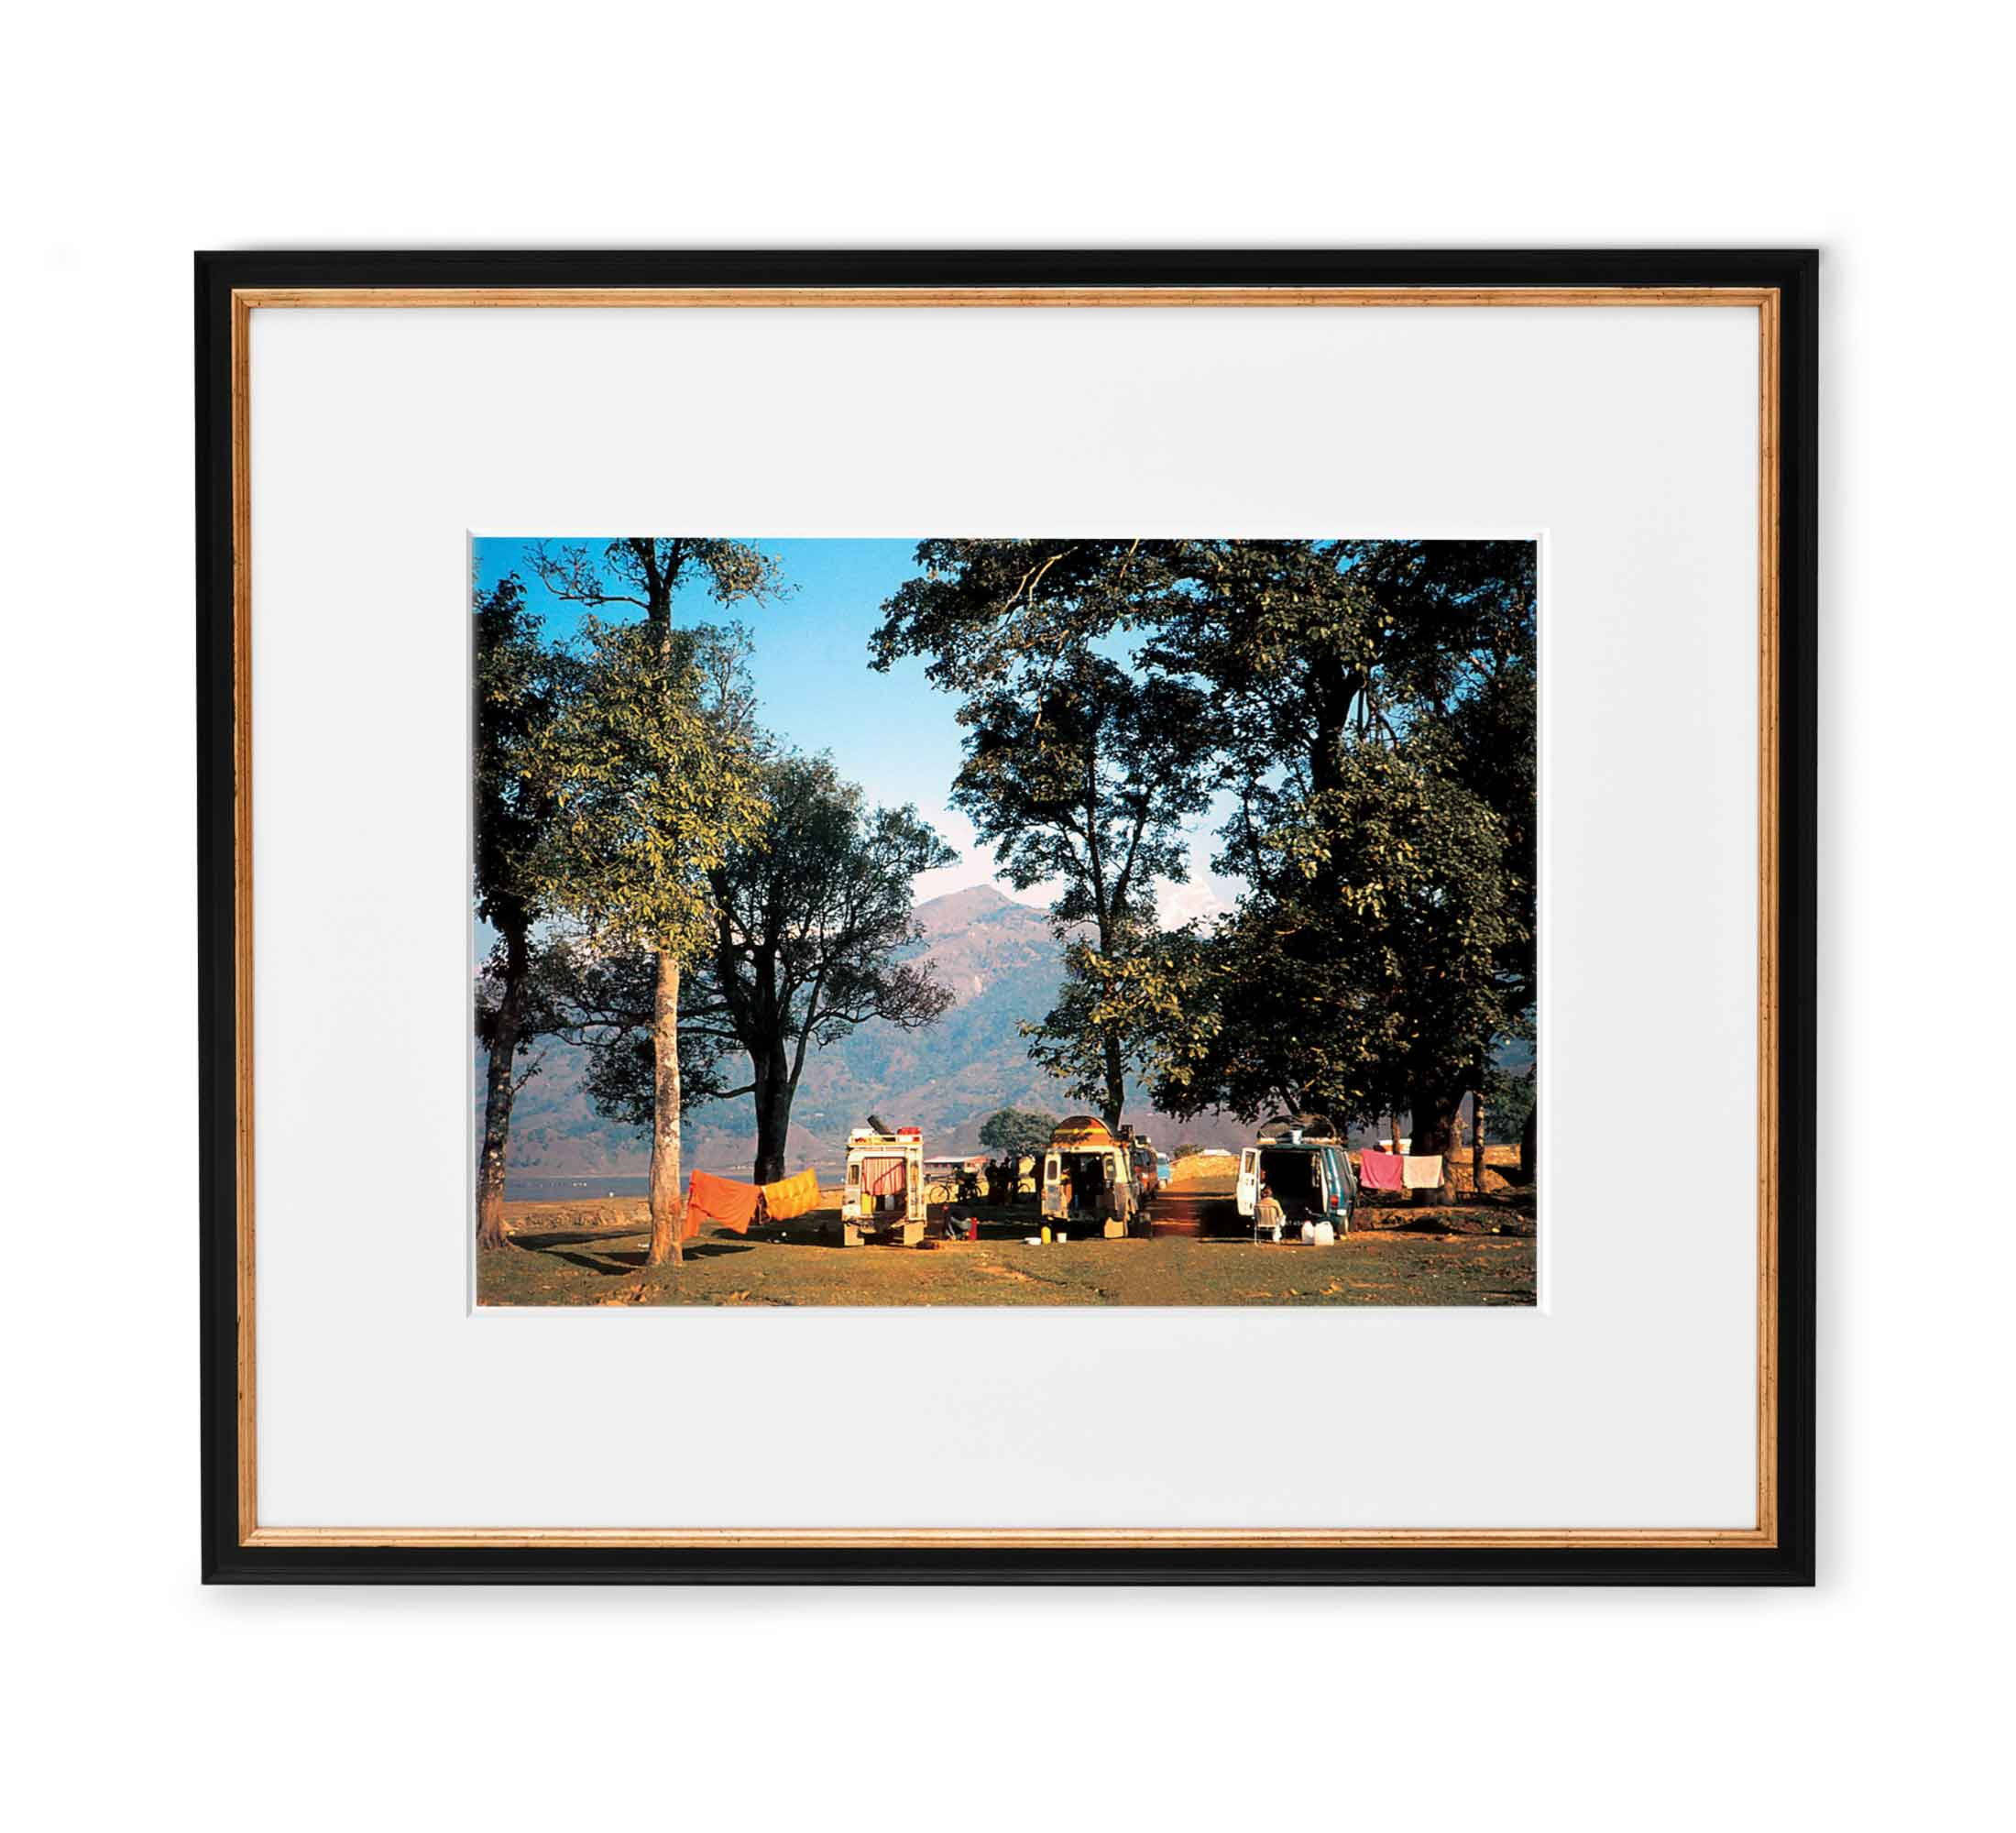 Himalayan Camp Framed Black and Gold Wood